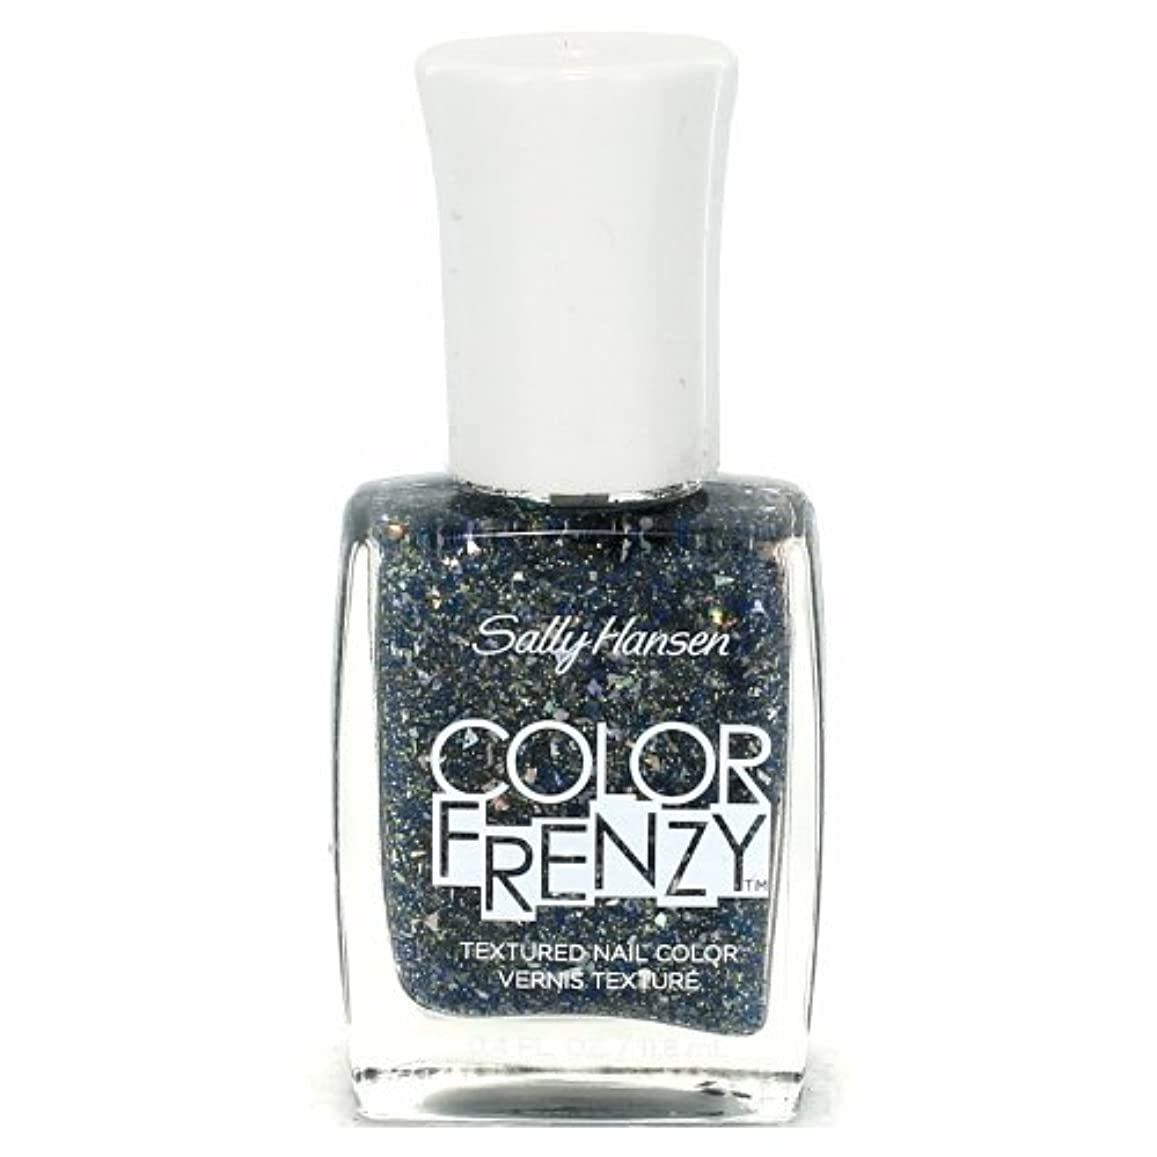 観光に行く読みやすさ行商人(3 Pack) SALLY HANSEN Color Frenzy Textured Nail Color - Sea Salt (並行輸入品)